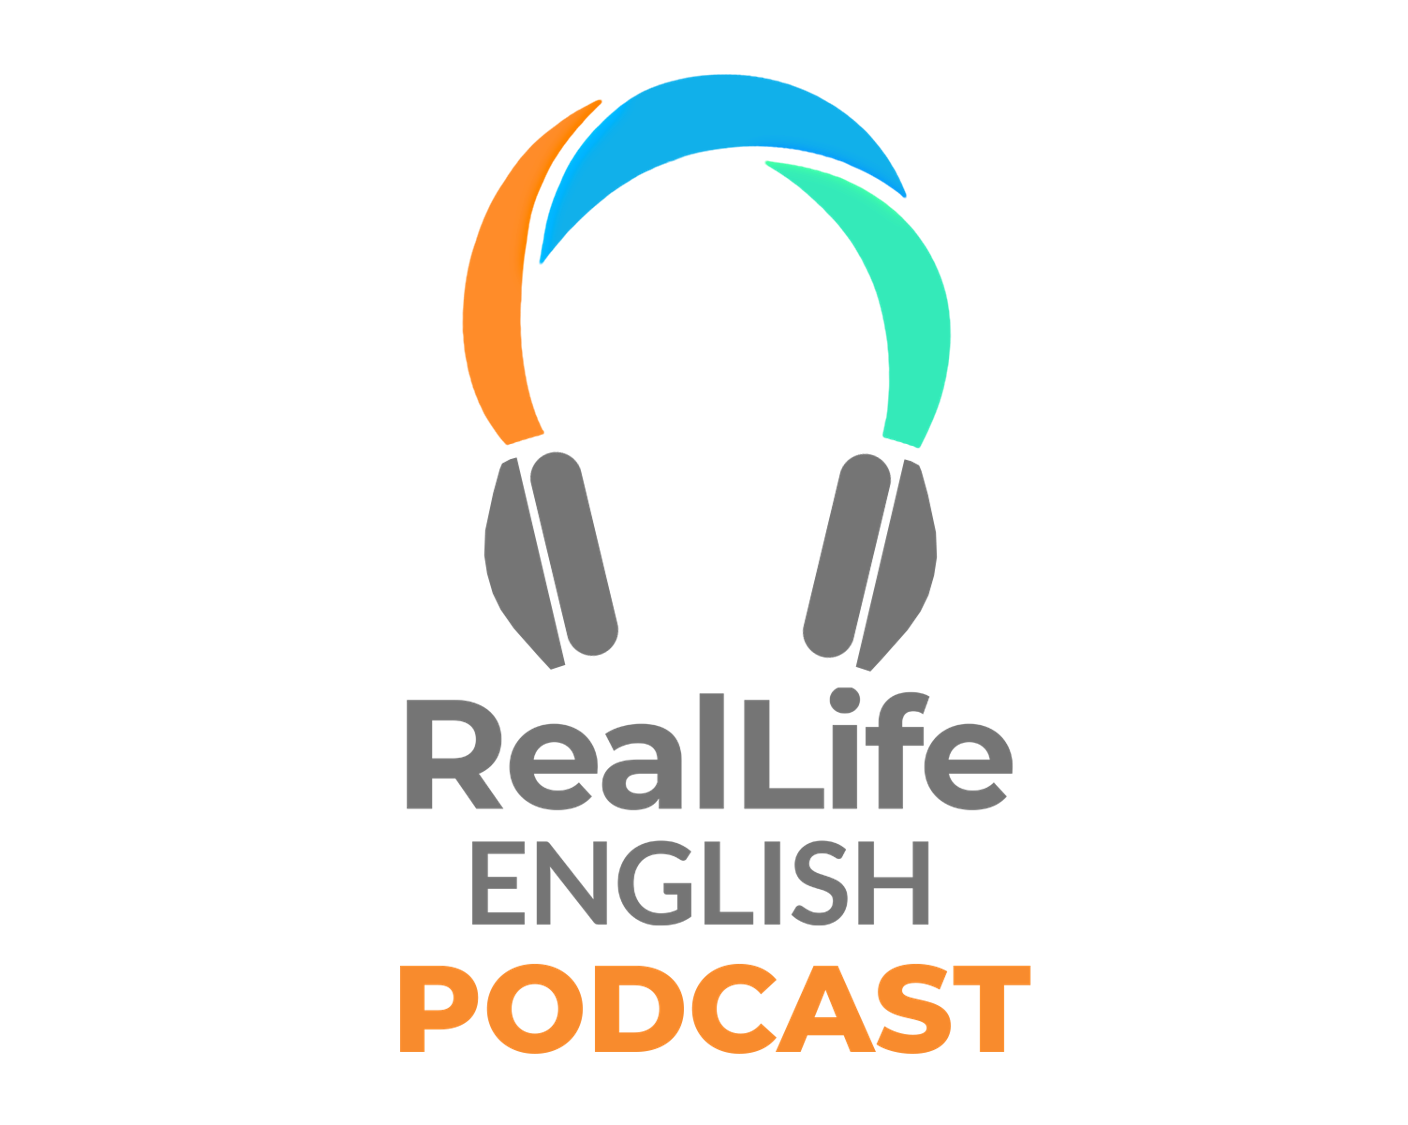 #231 - Speak Clearly and Overcome Perfectionism | Rachel's English